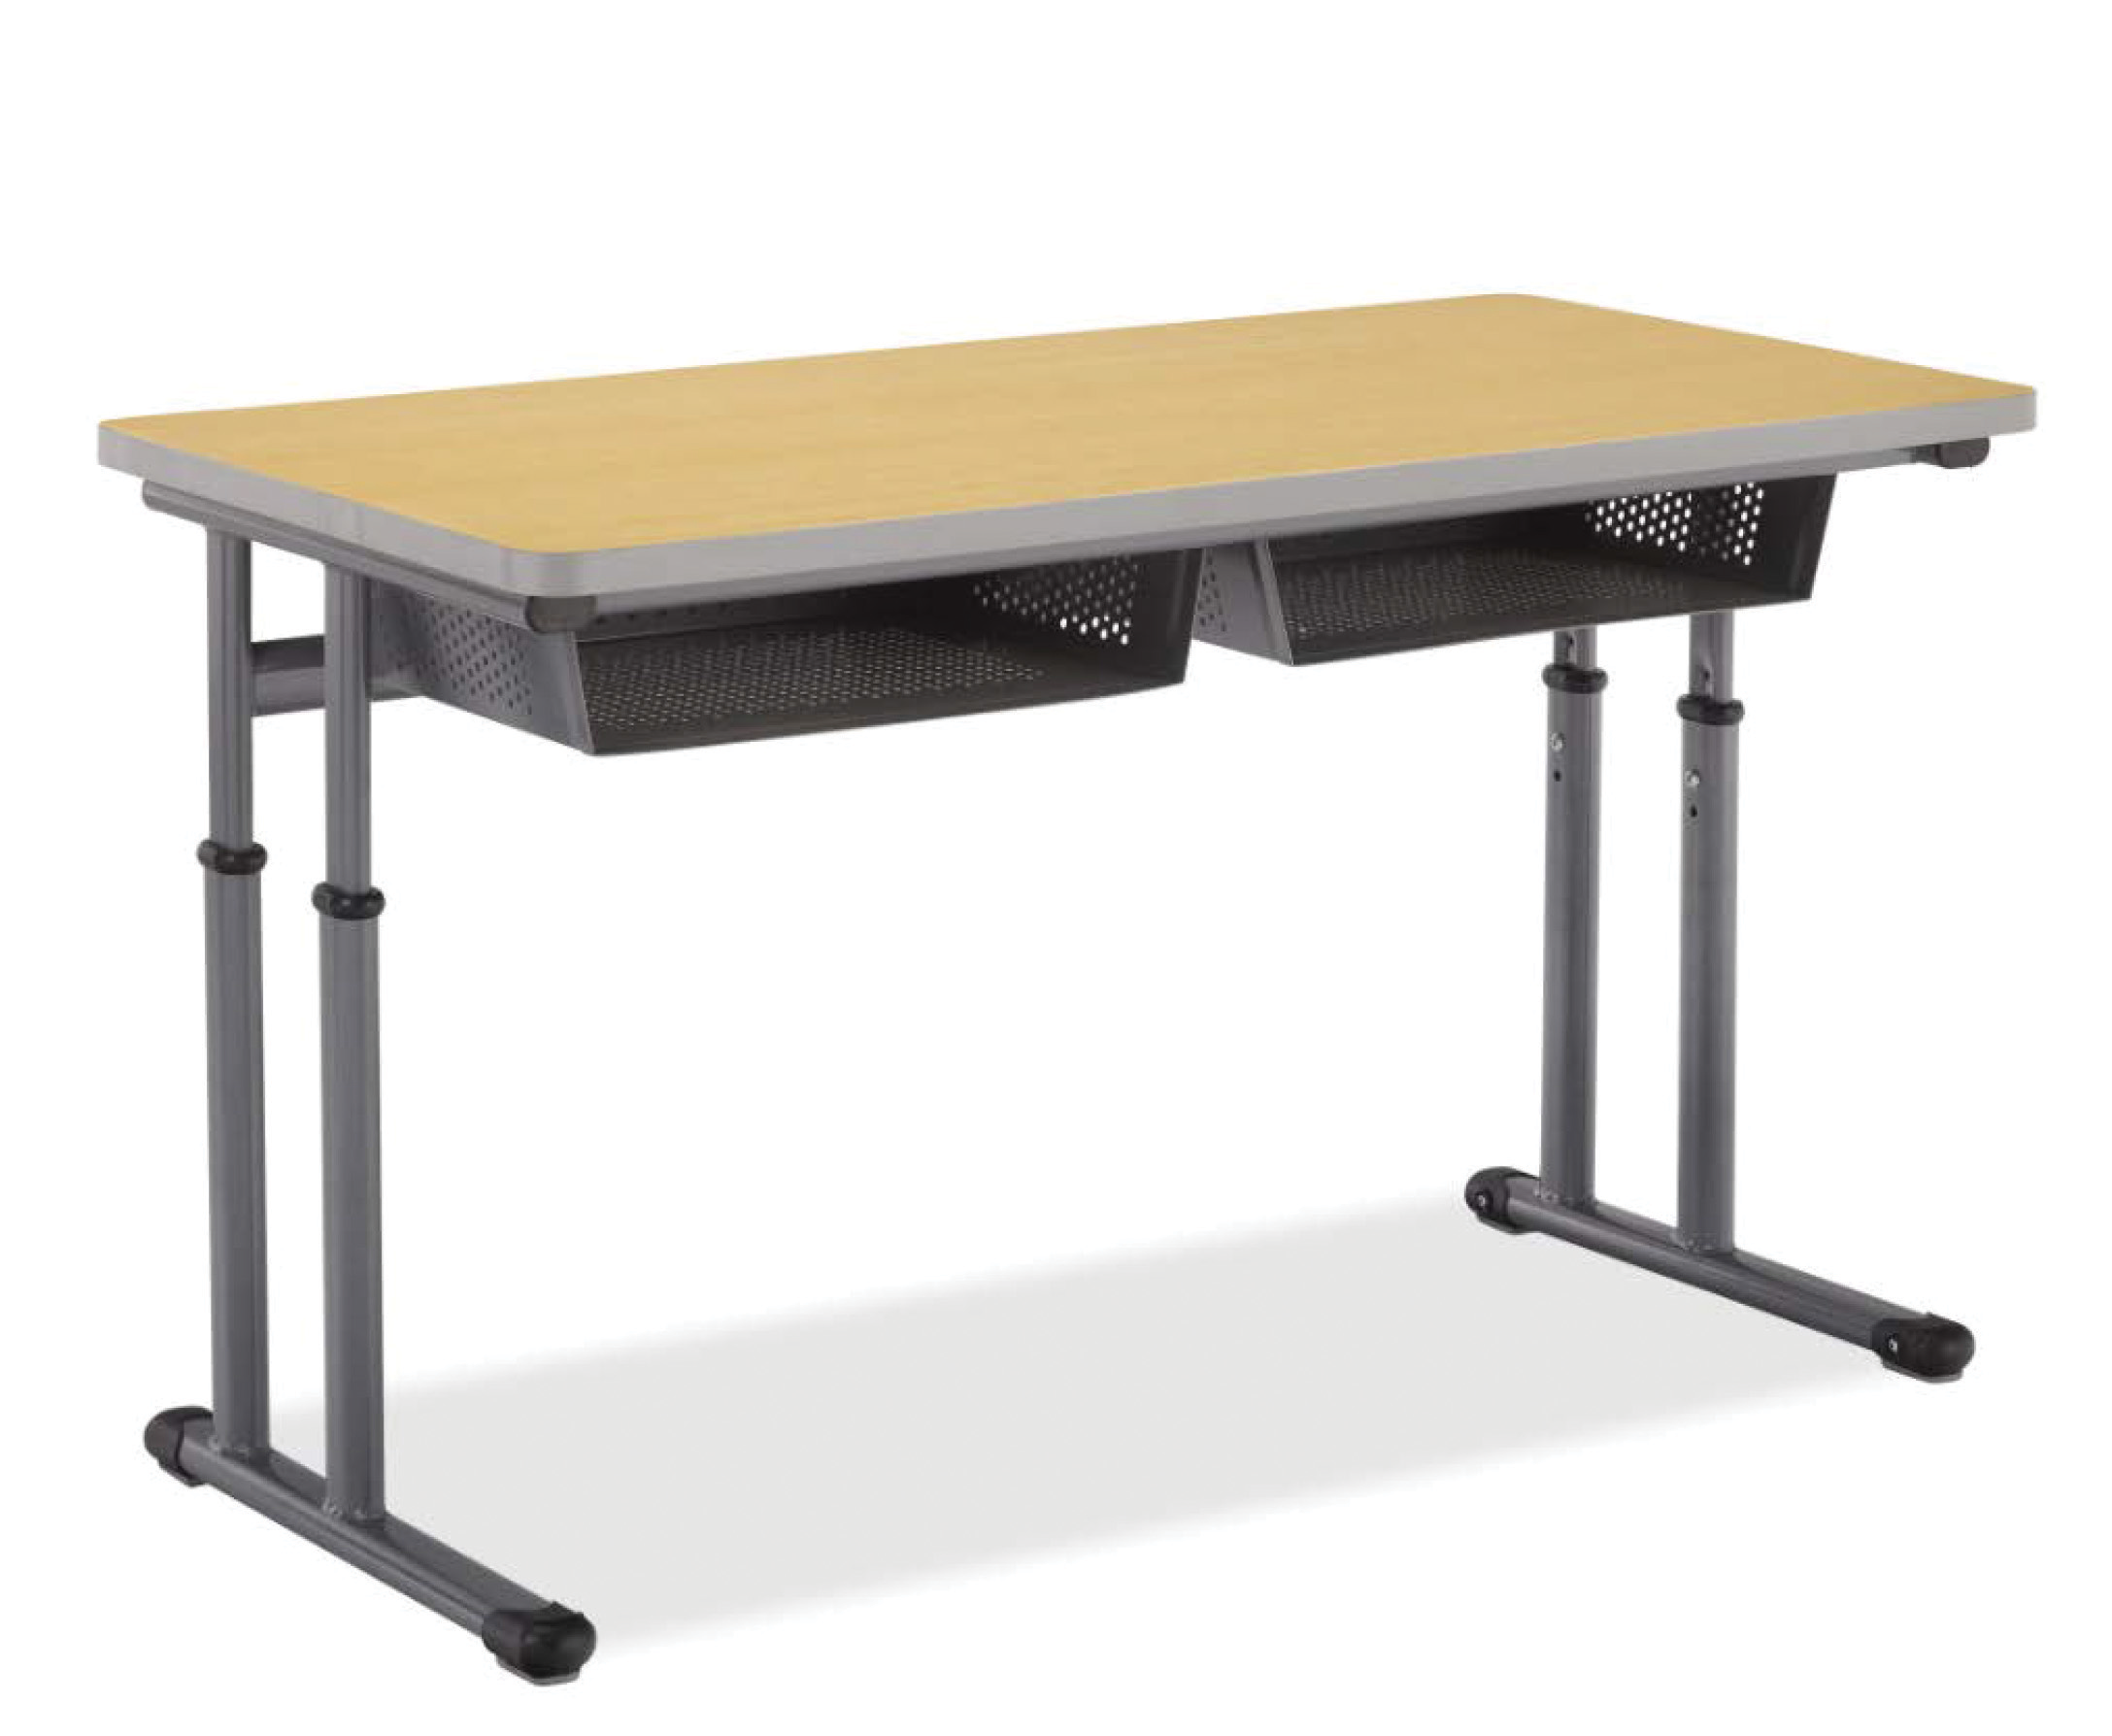 Two Student Dual Post Pedestal Leg Desk